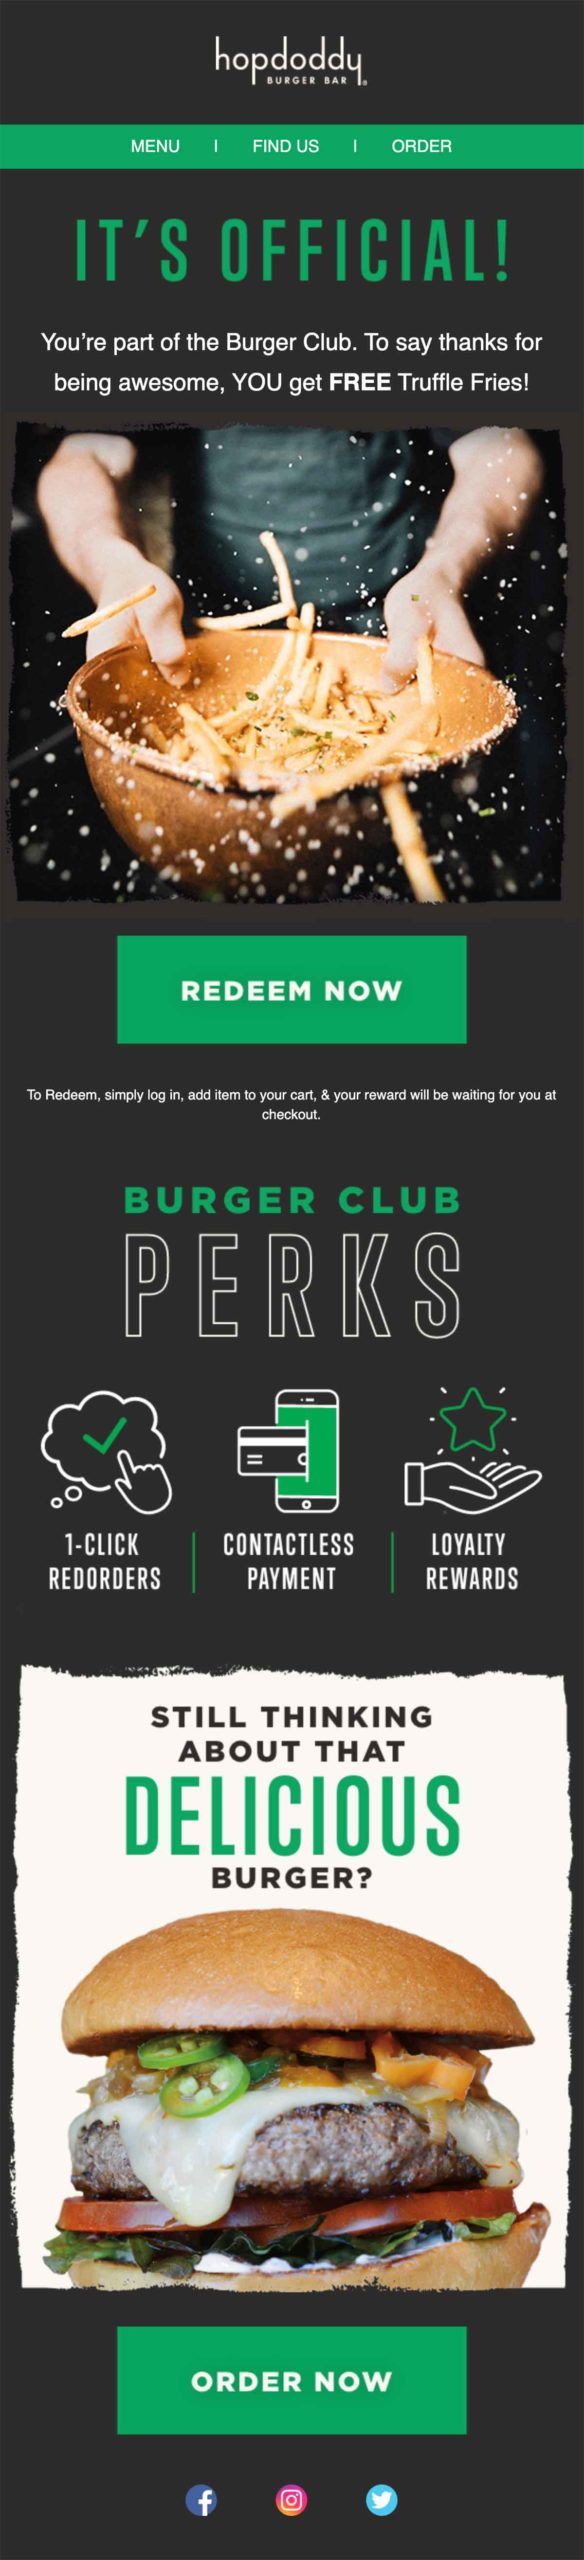 Hopdoddy New Intro Email